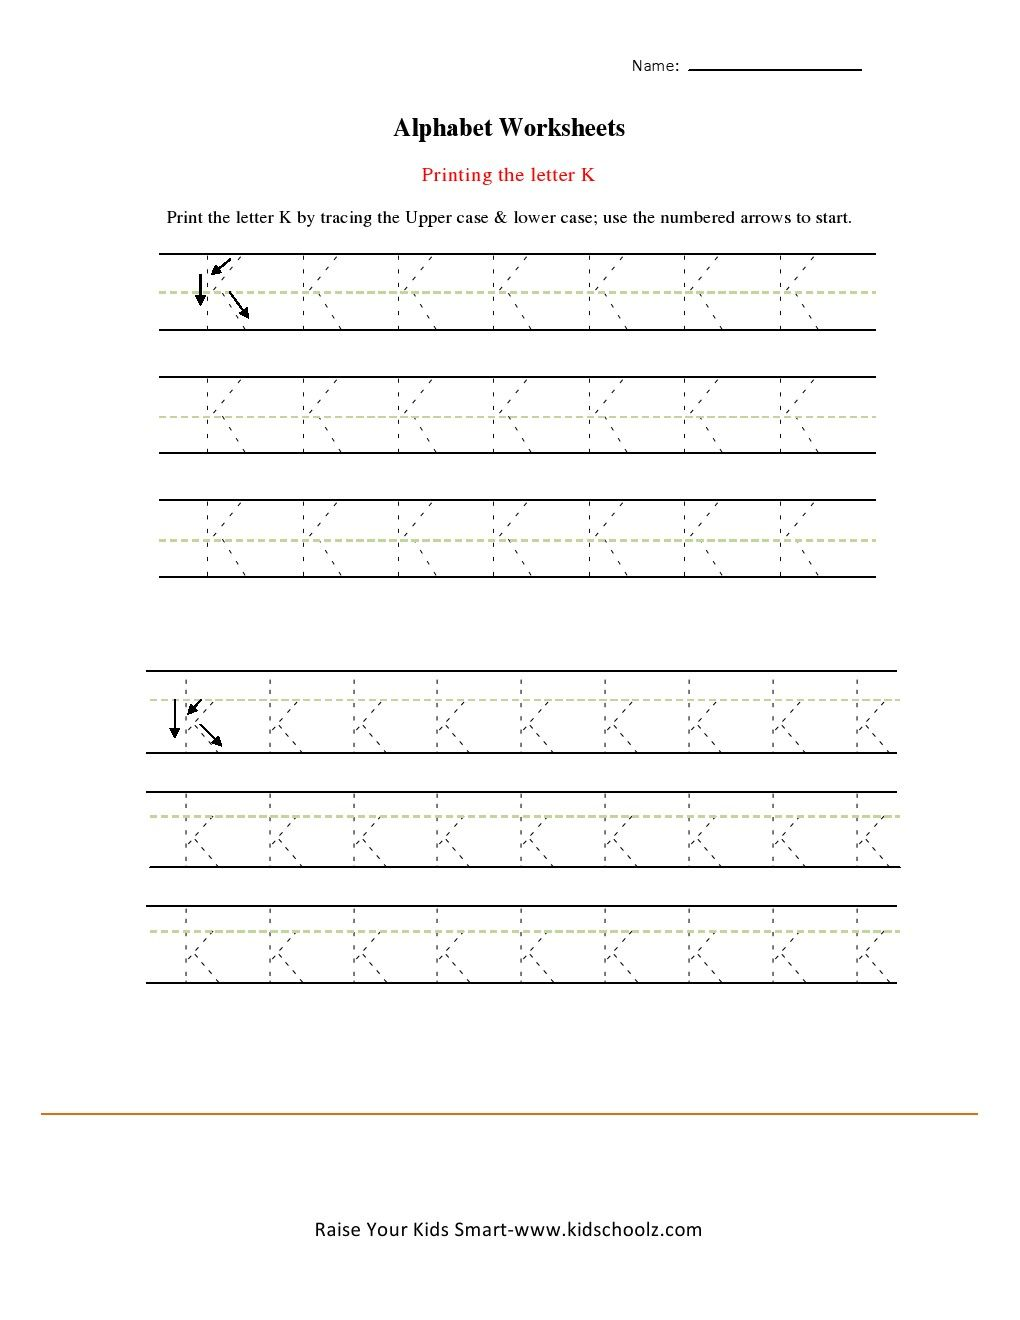 worksheet Letter K Worksheet letter k worksheets bing images pinterest images